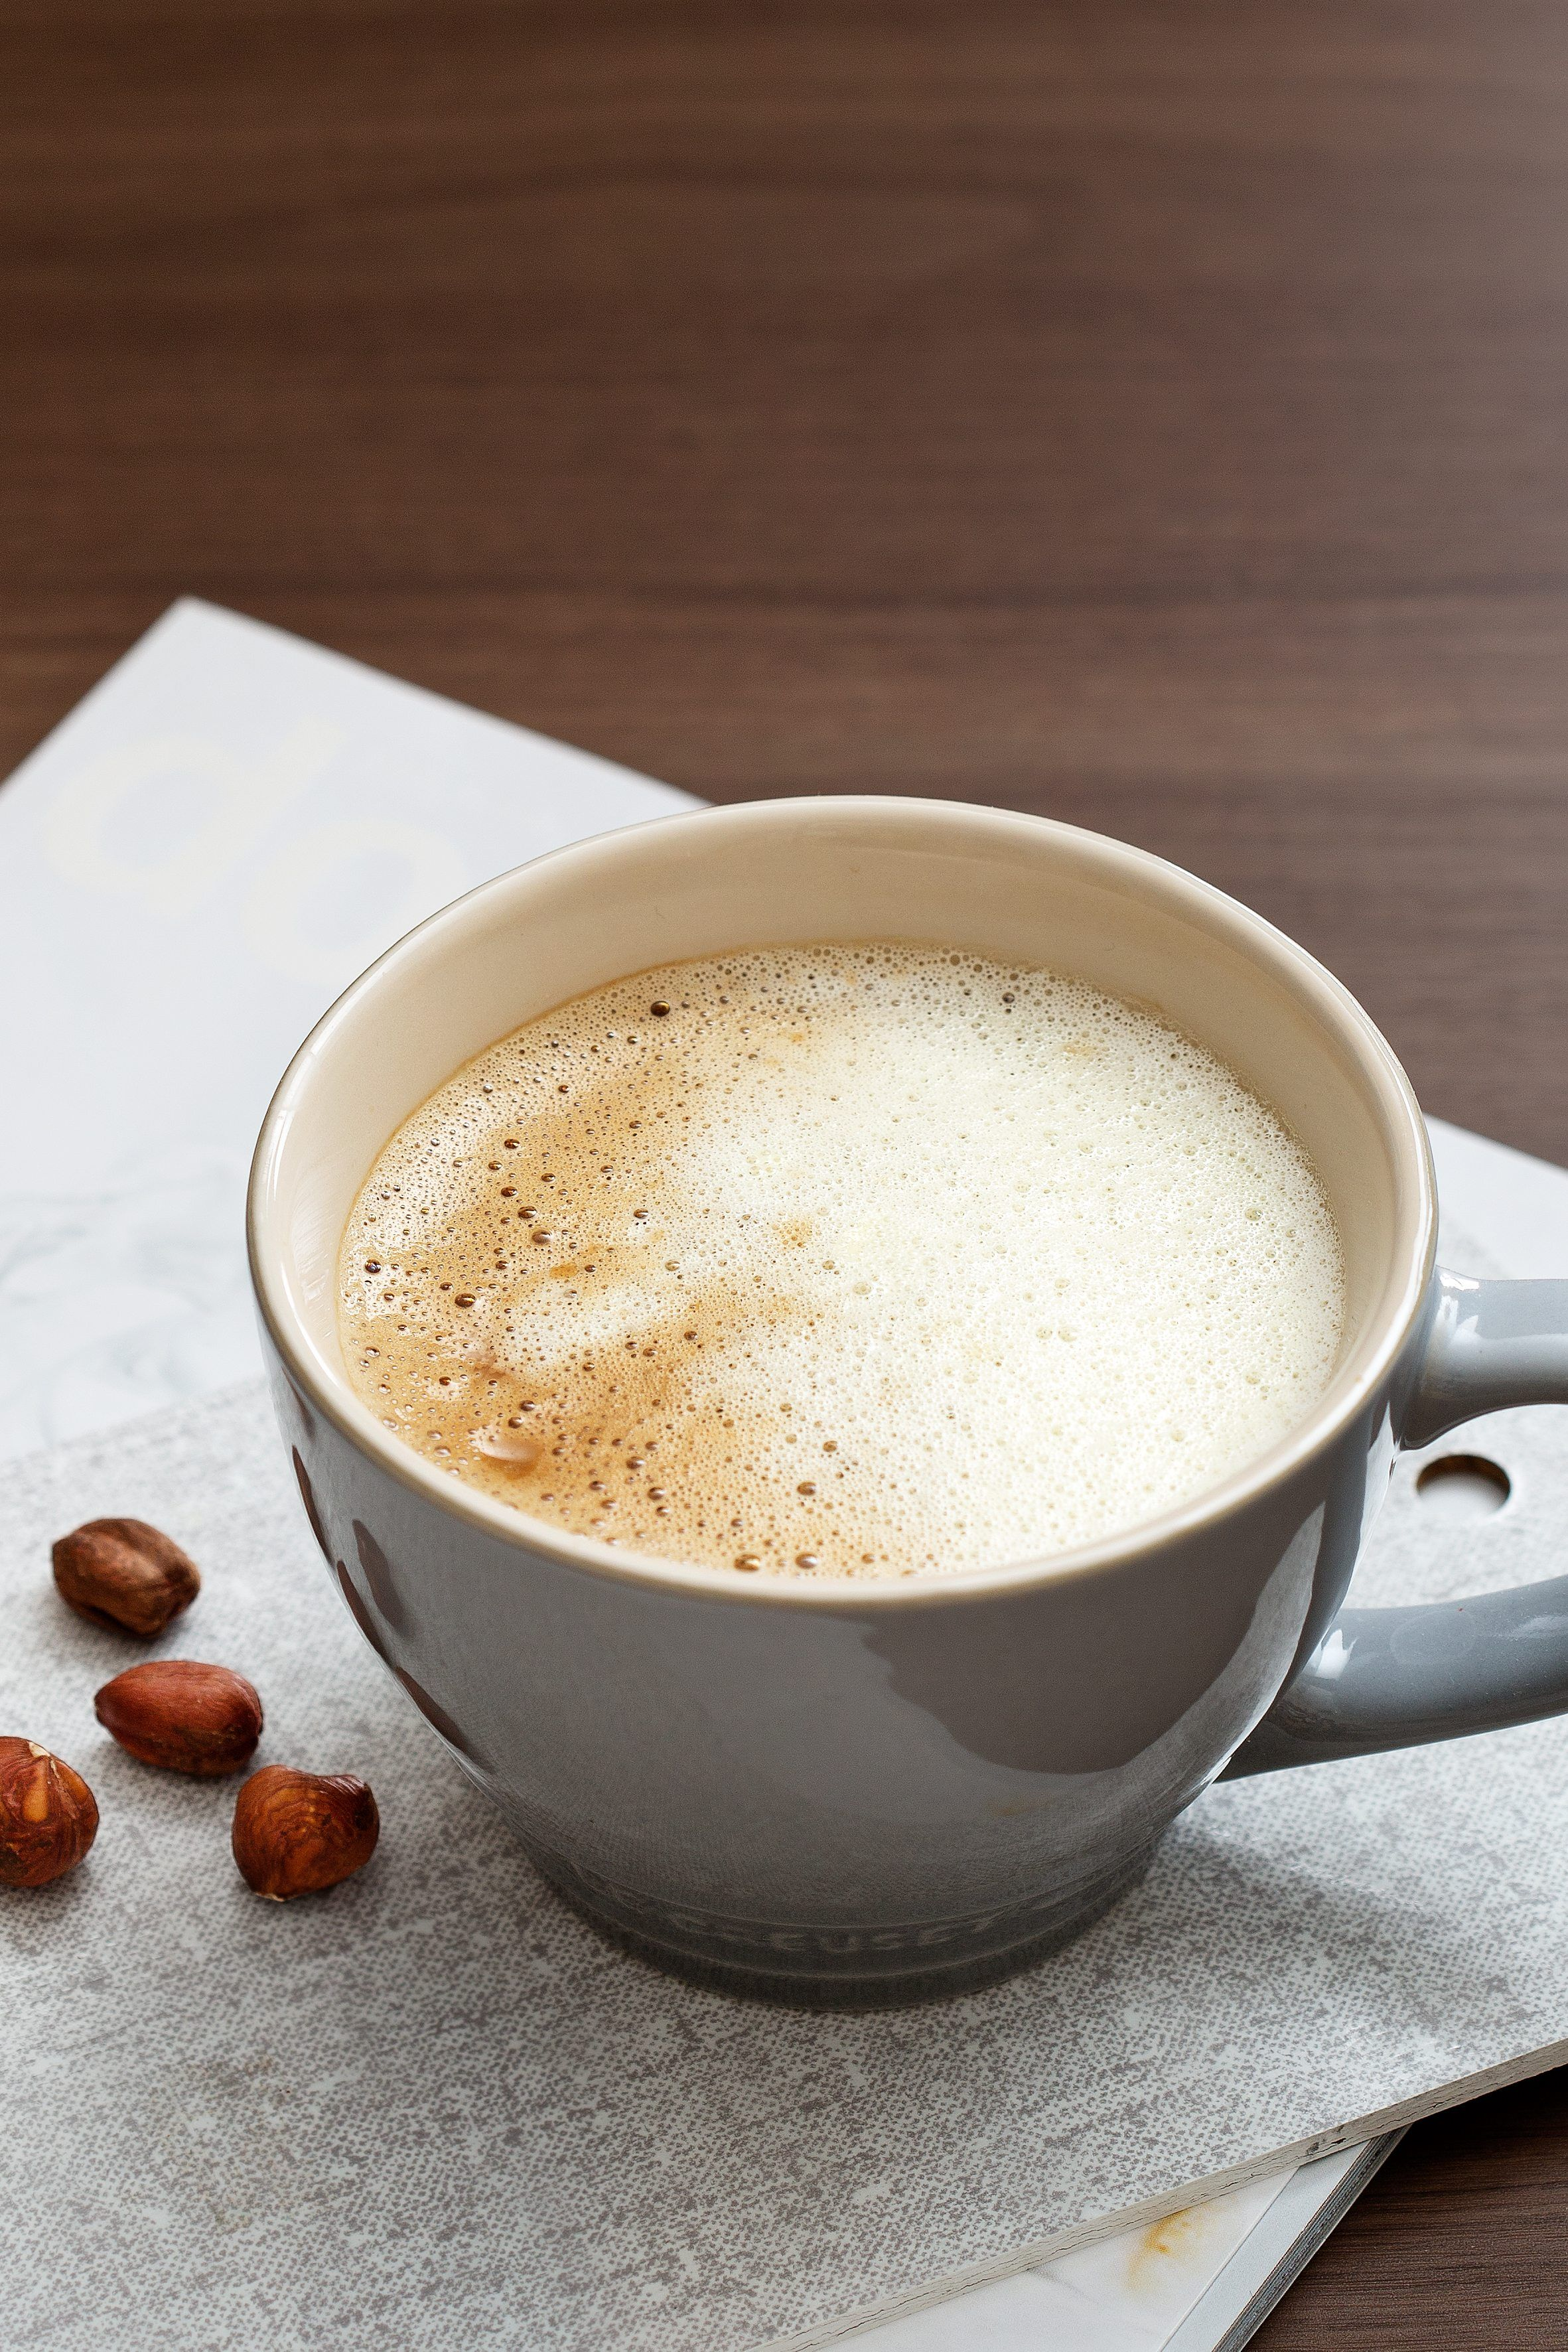 Coffee with cream gives you a warm, soft and filling start to your day, works as a mid-day pick-me-up or even as a dessert.